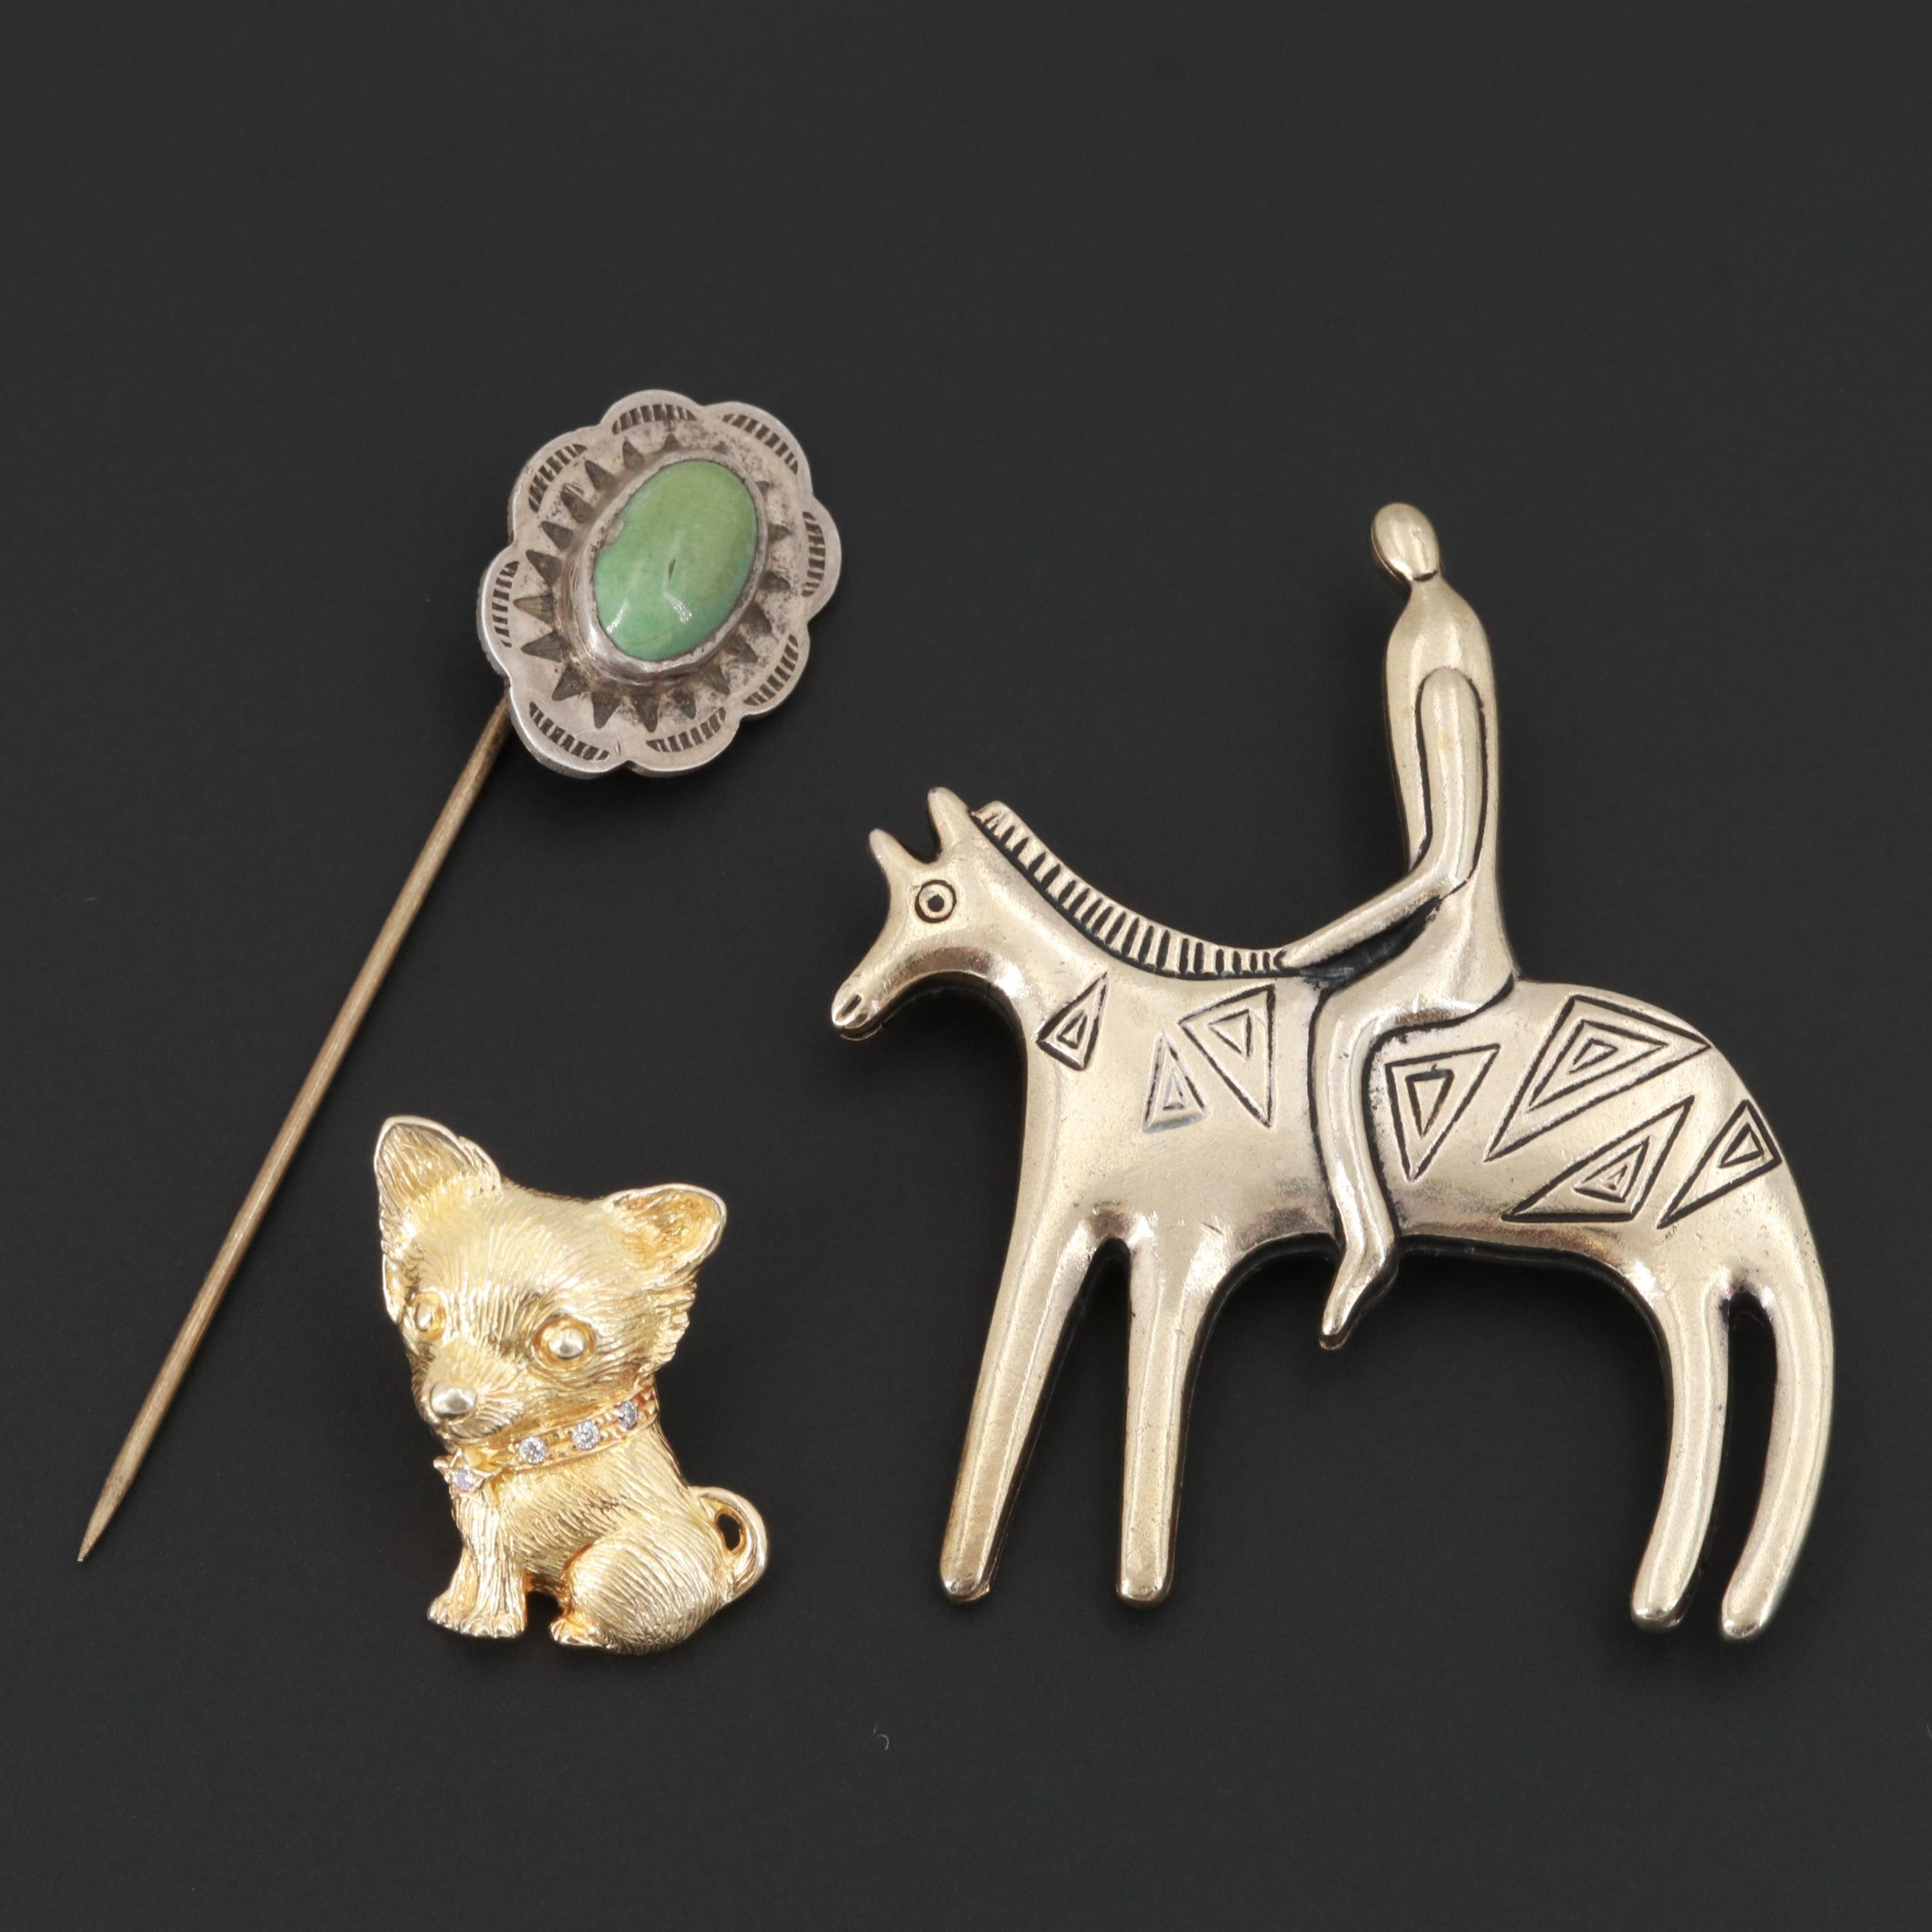 Brooch and Pins Including Sterling and Gemstones